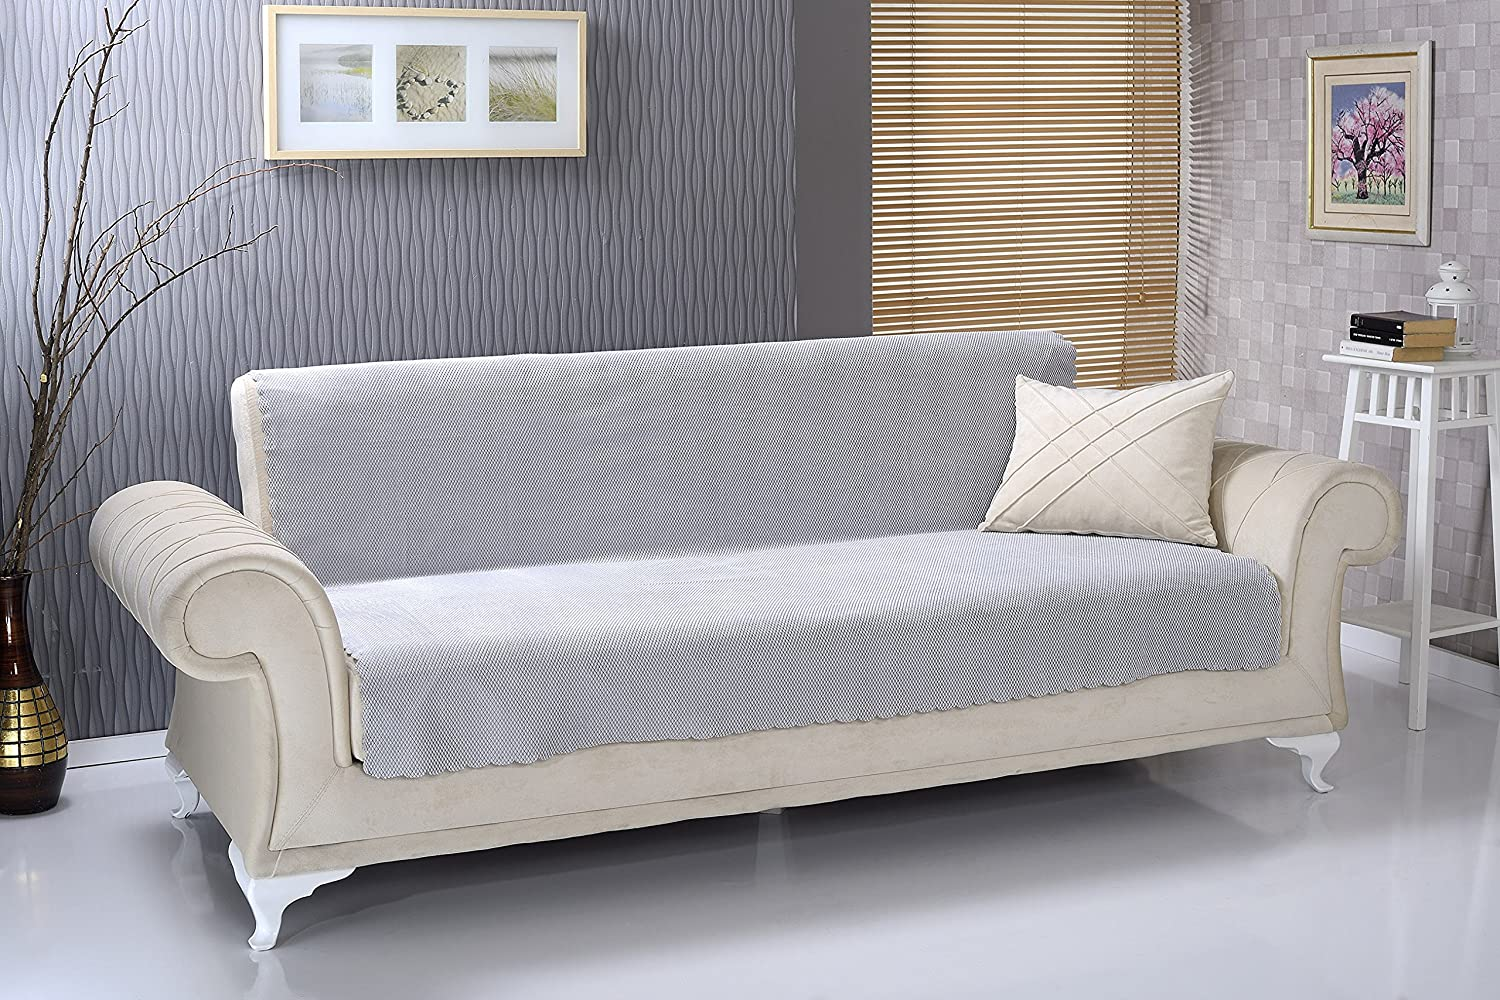 rose antislip armless 1piece sofa shield futon couch pet cover furniture protector diamond silver it is provided with quite a few appealing features